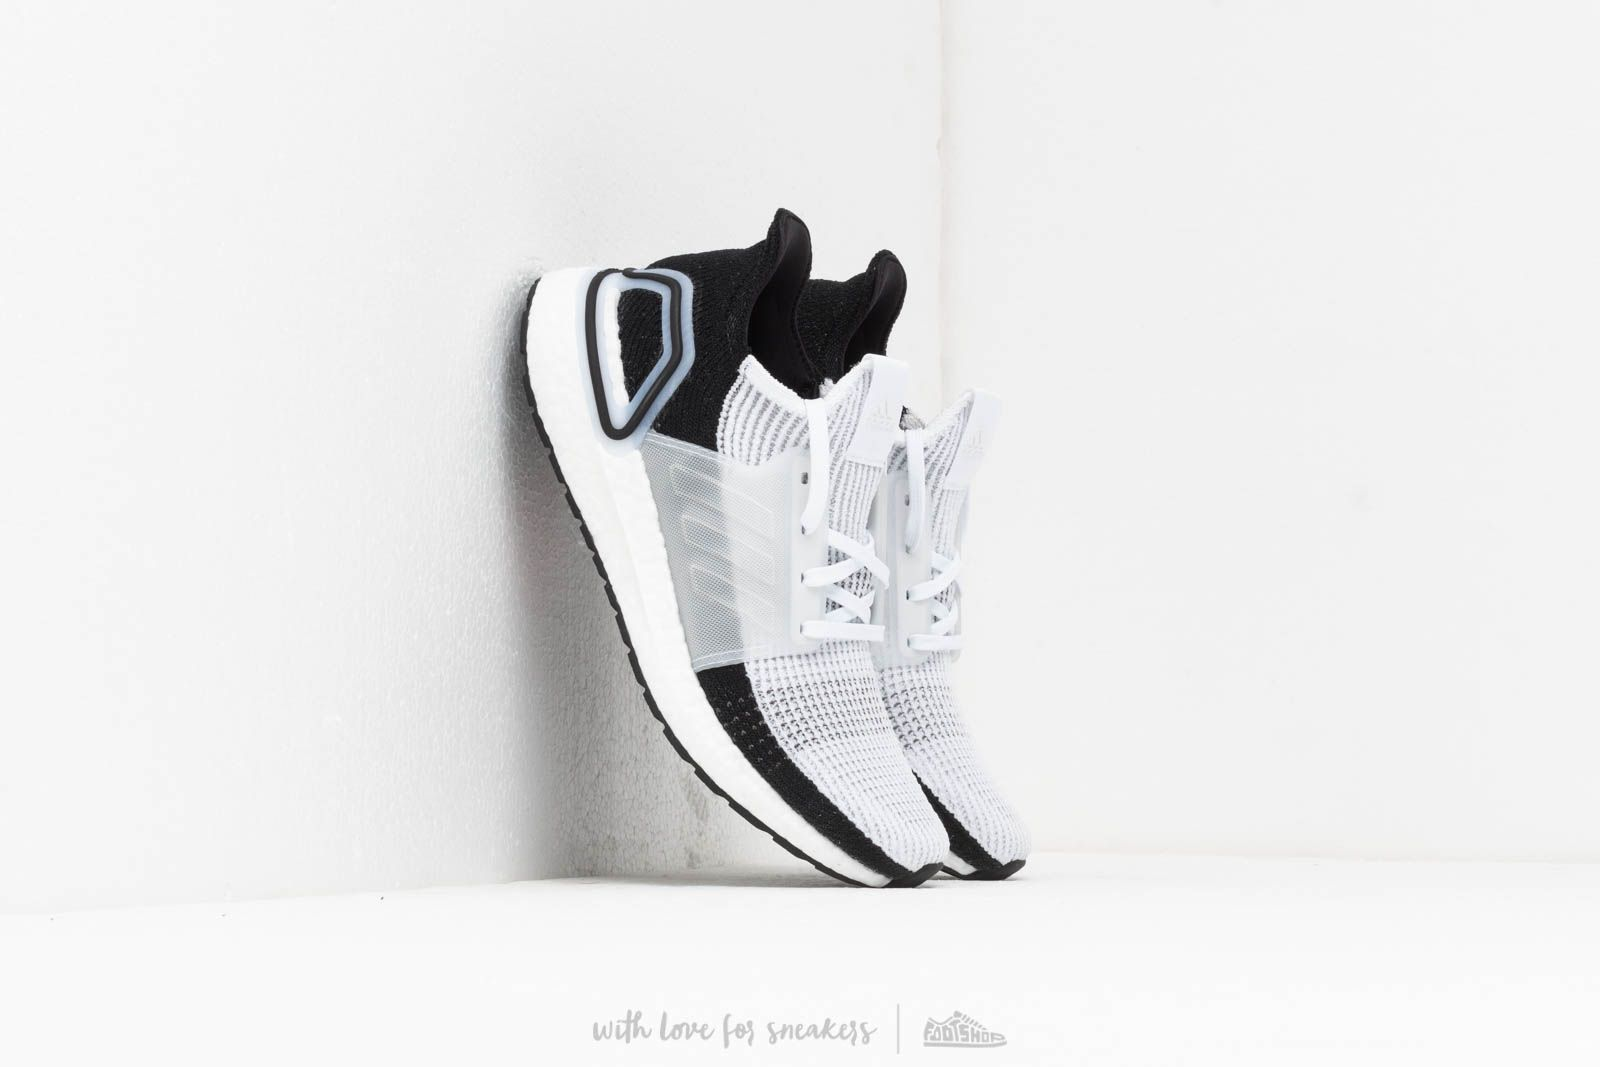 c6d062c82c2 adidas UltraBOOST 19 Ftwr White  Ftwr White  Grey Two at a great price 176